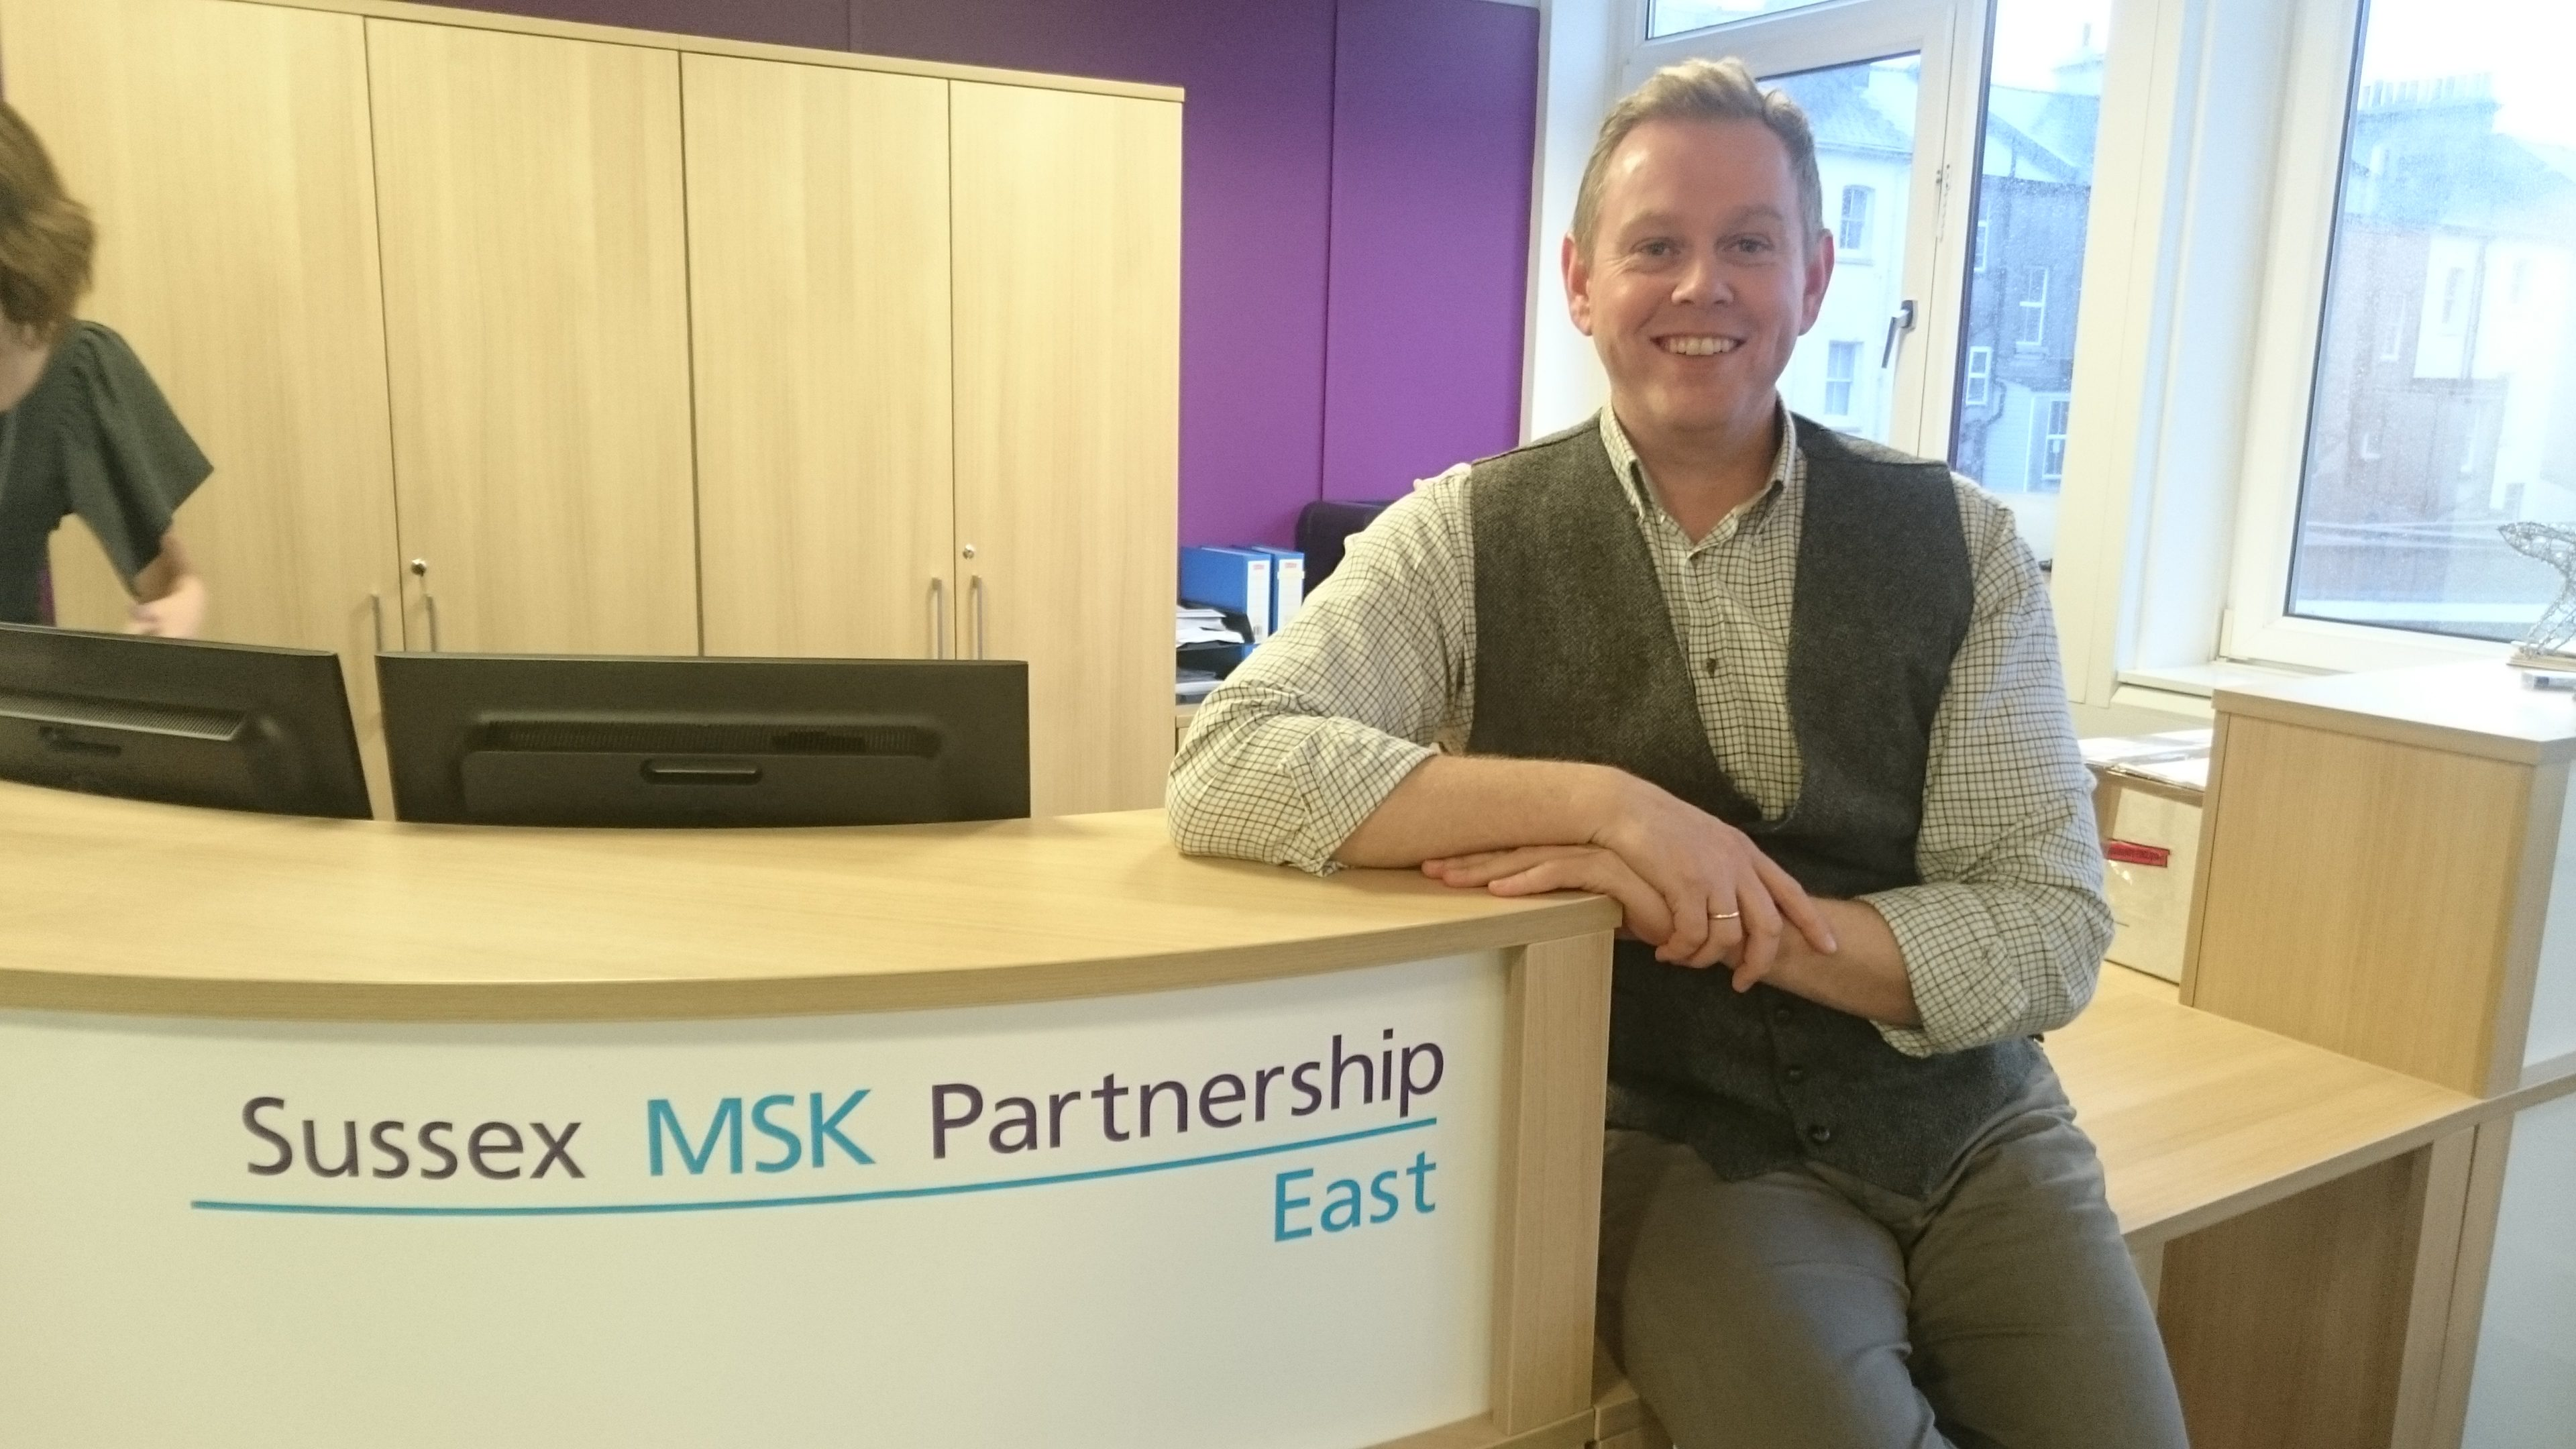 Sussex MSK Partnership East Appoints New Clinical Director